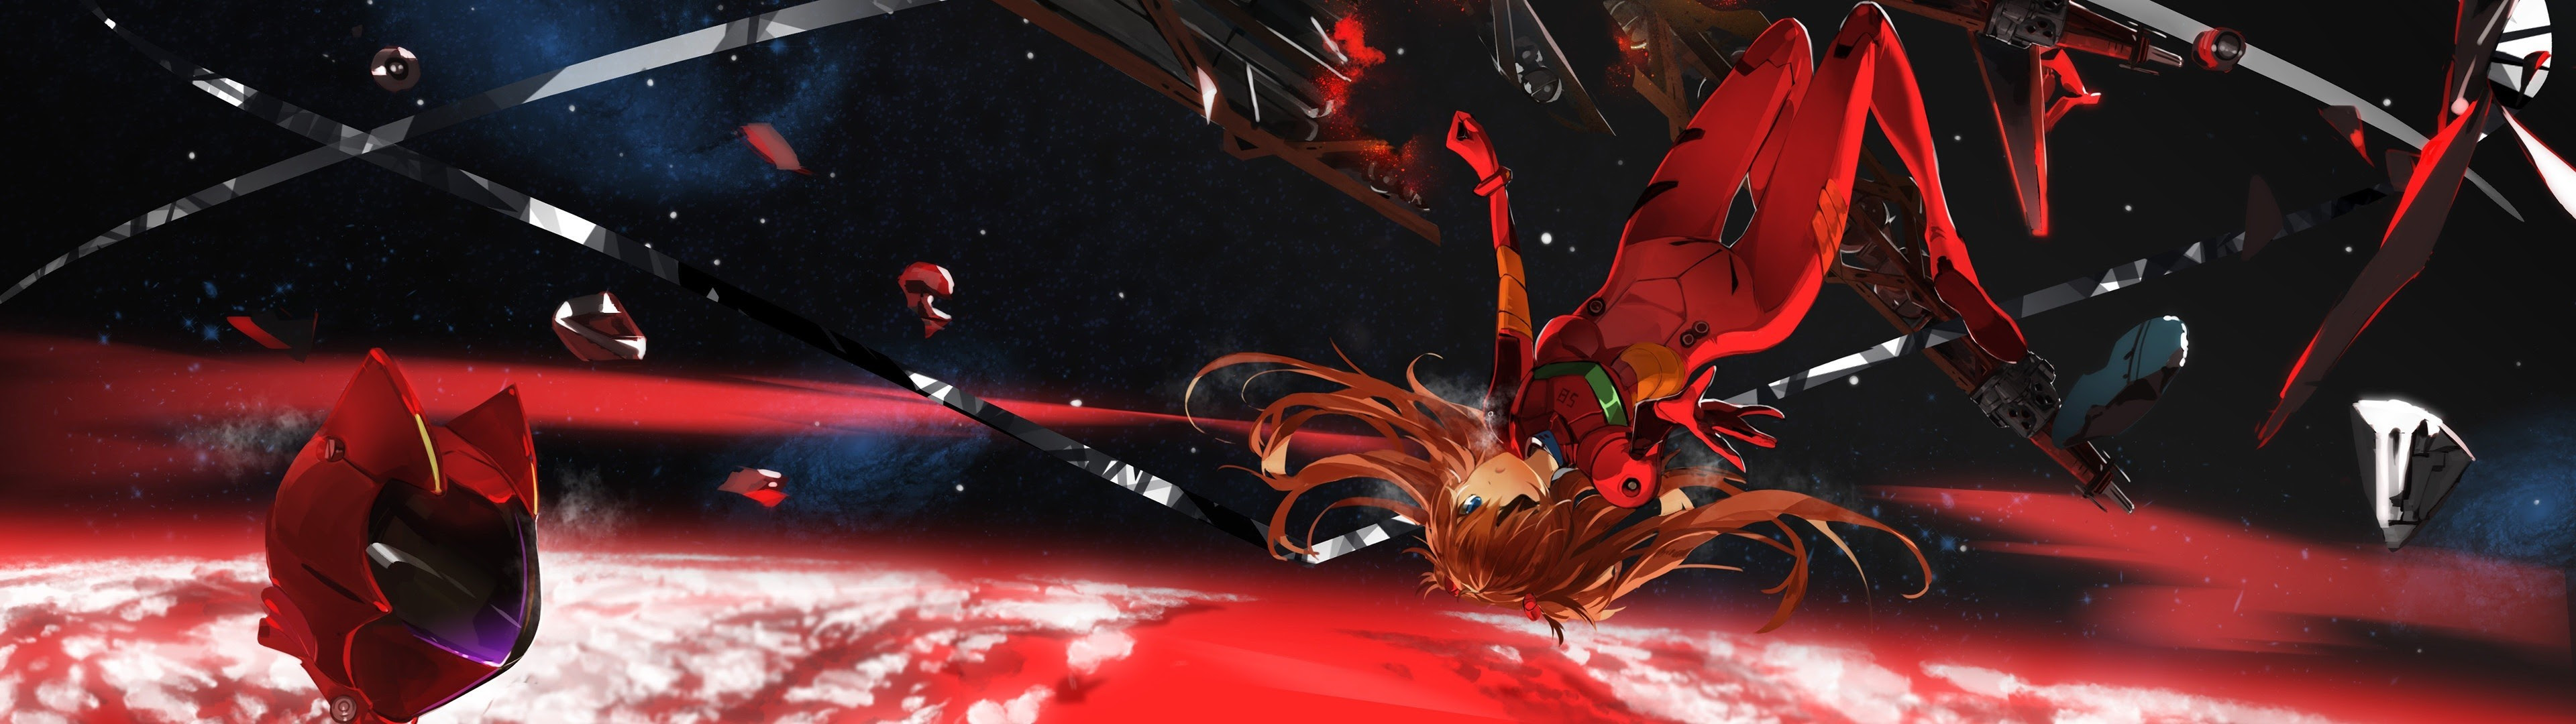 Anime Dual Monitor Wallpaper 46 Images